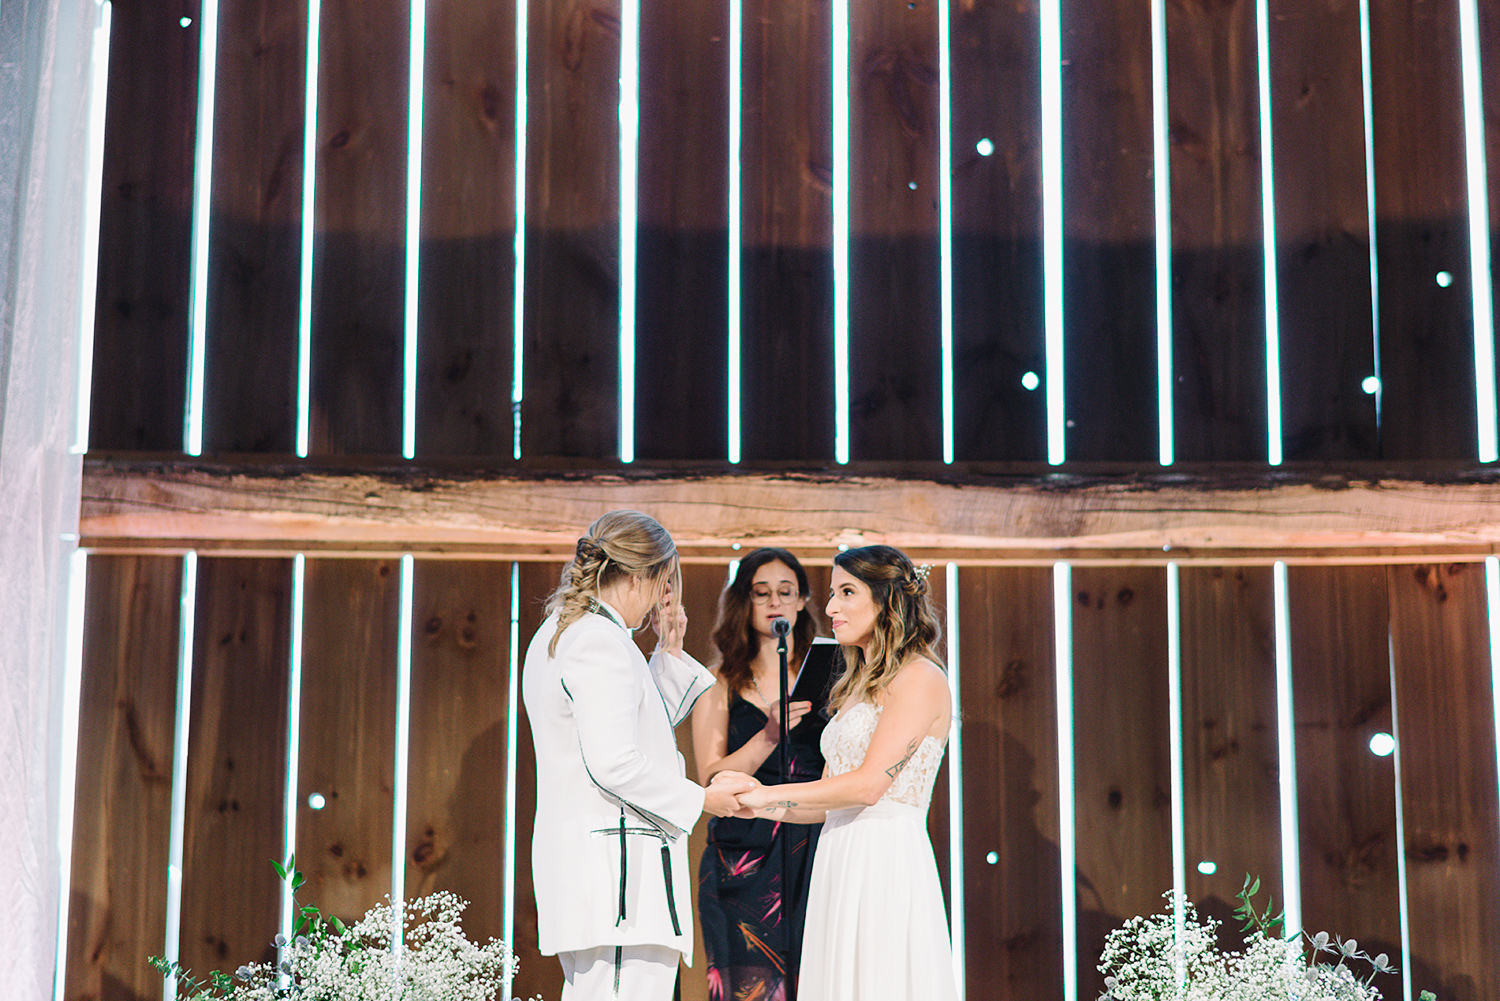 cambium-farms-wedding-ryanne-hollies-photography-gay-wedding-lgbtq-trendy-cool-badass-junebug-weddings-inspiration-ceremony-in-old-barn-bride-and-bride-vows-crying-reaction-other-bride.jpg